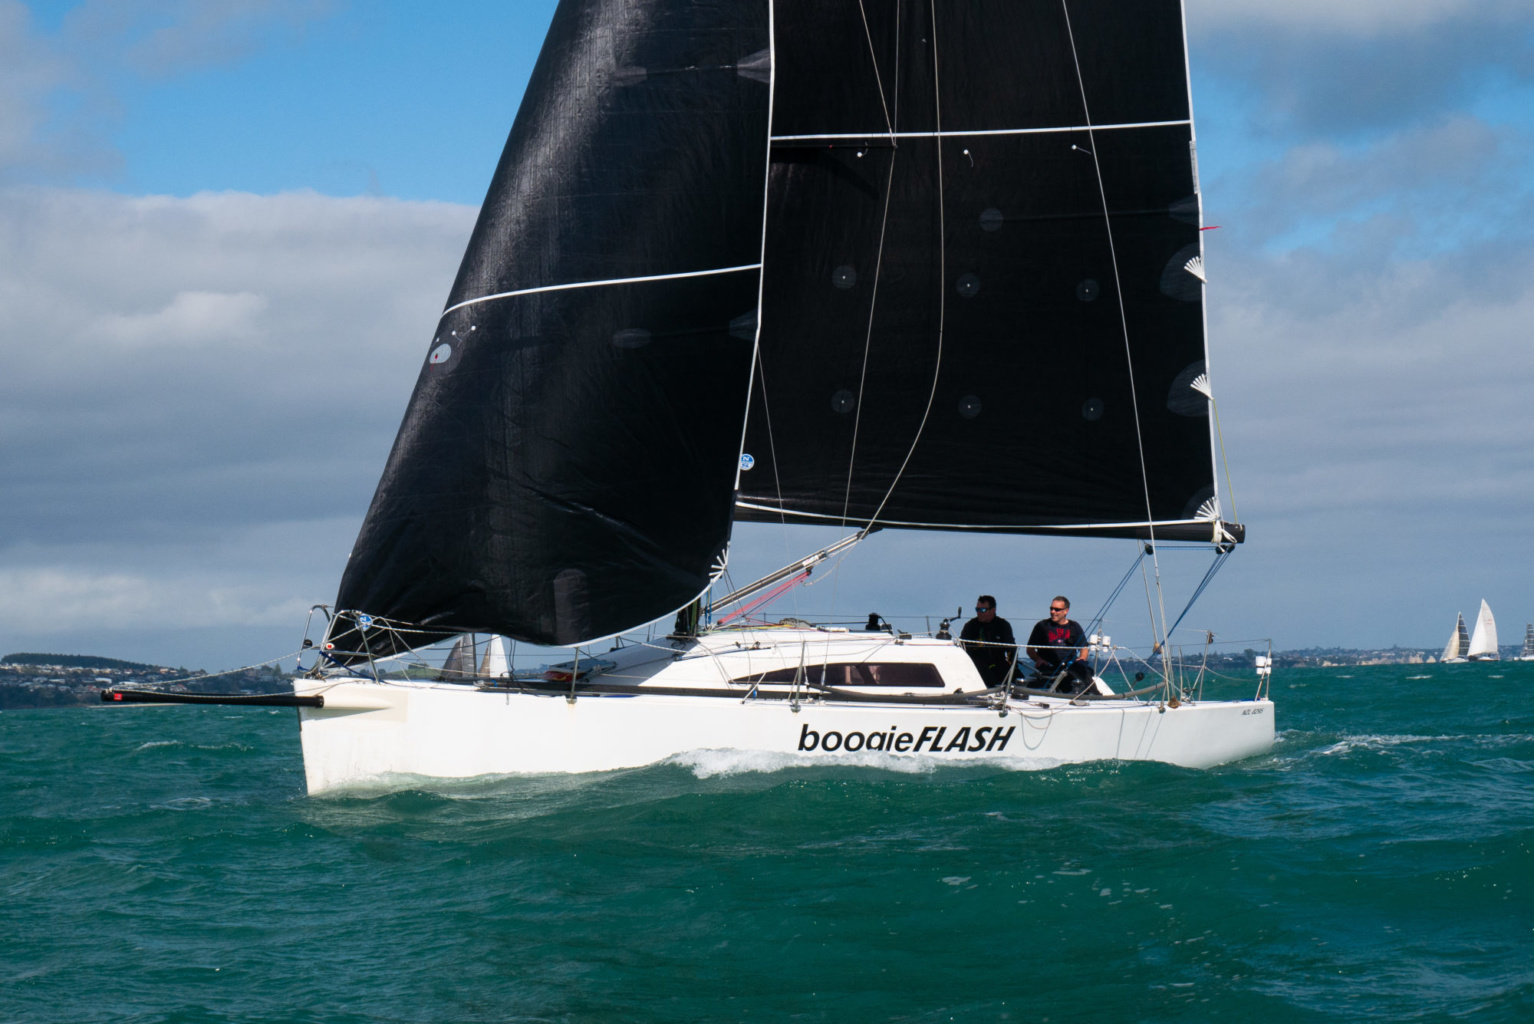 Boogie Flash NZL North Sails 3Di© Lissa Reyden